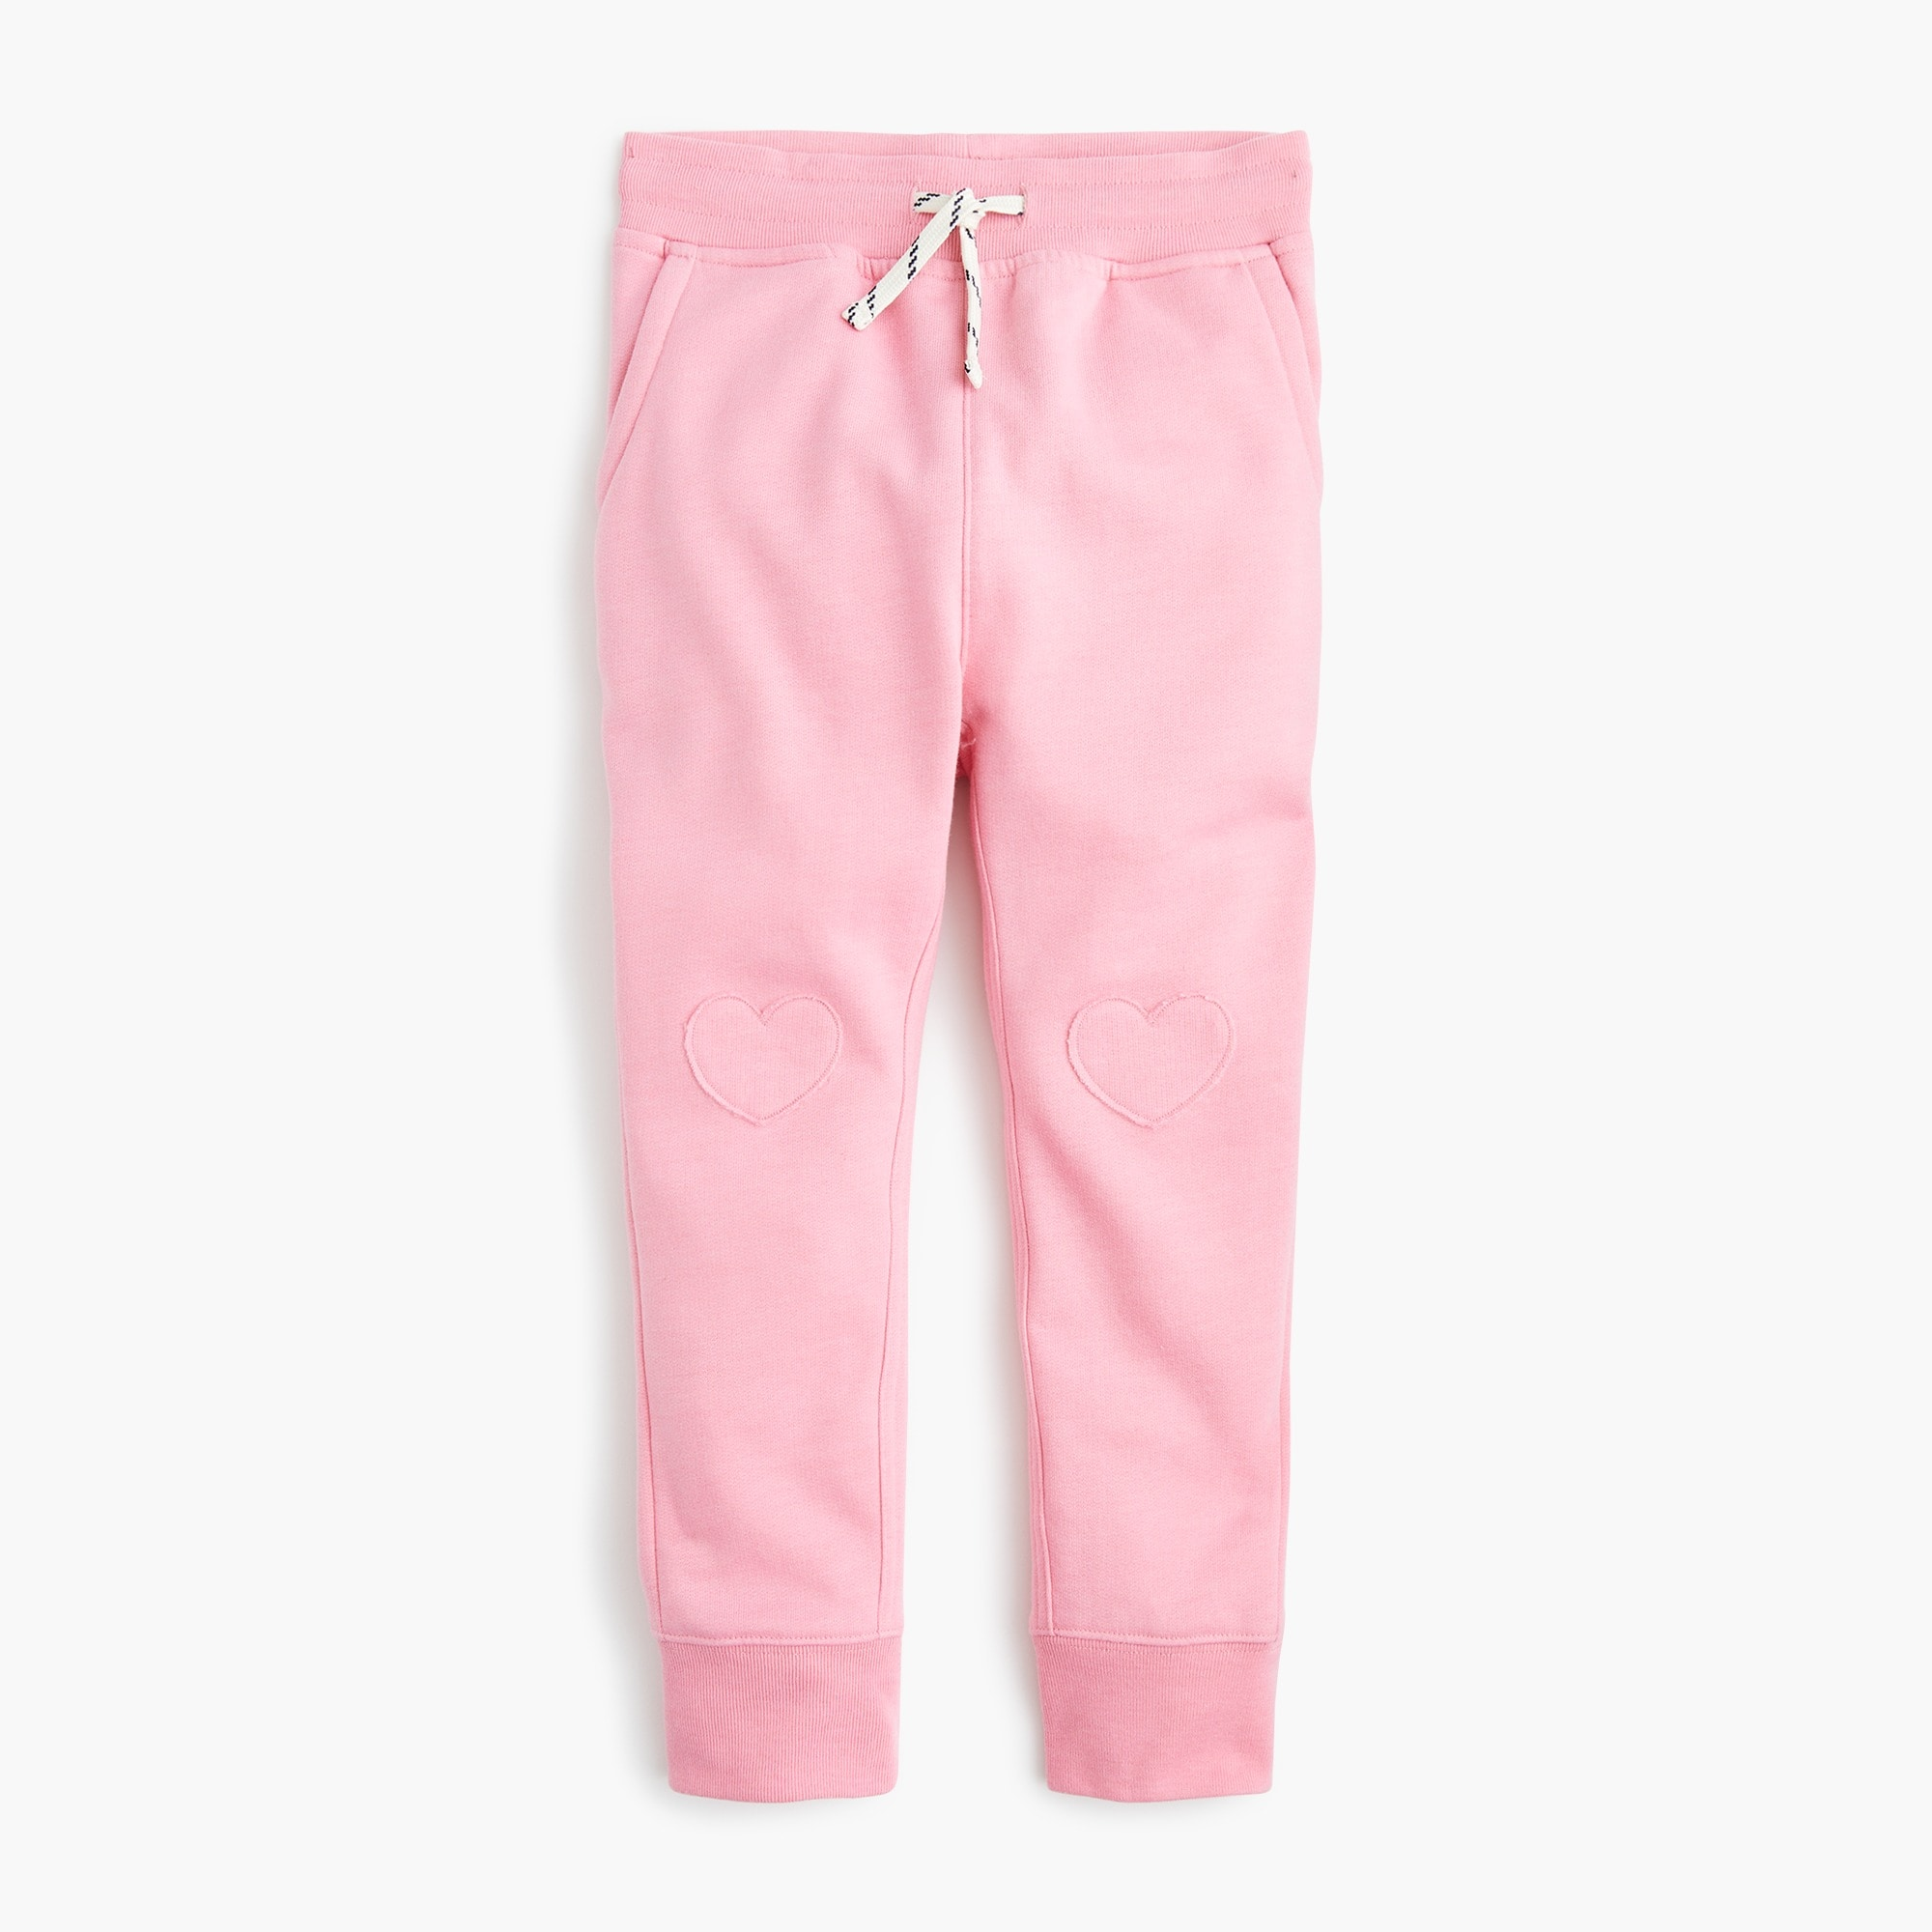 girls Girls' sweatpants with hearts on knees